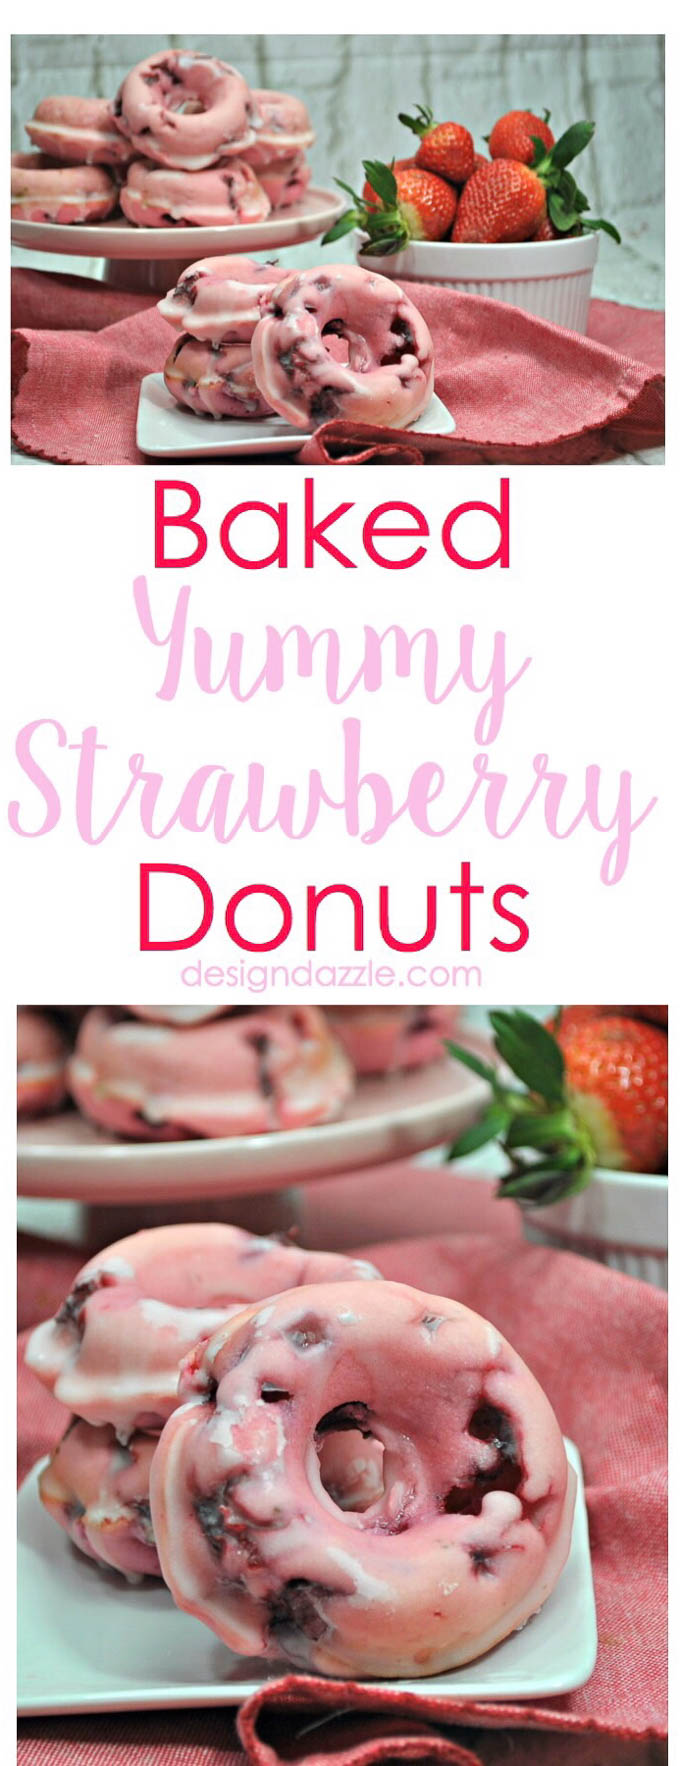 The step by step instructions and recipe to make these baked yummy strawberry donuts for yourself! This is a recipe that your family will LOVE! | Design Dazzle